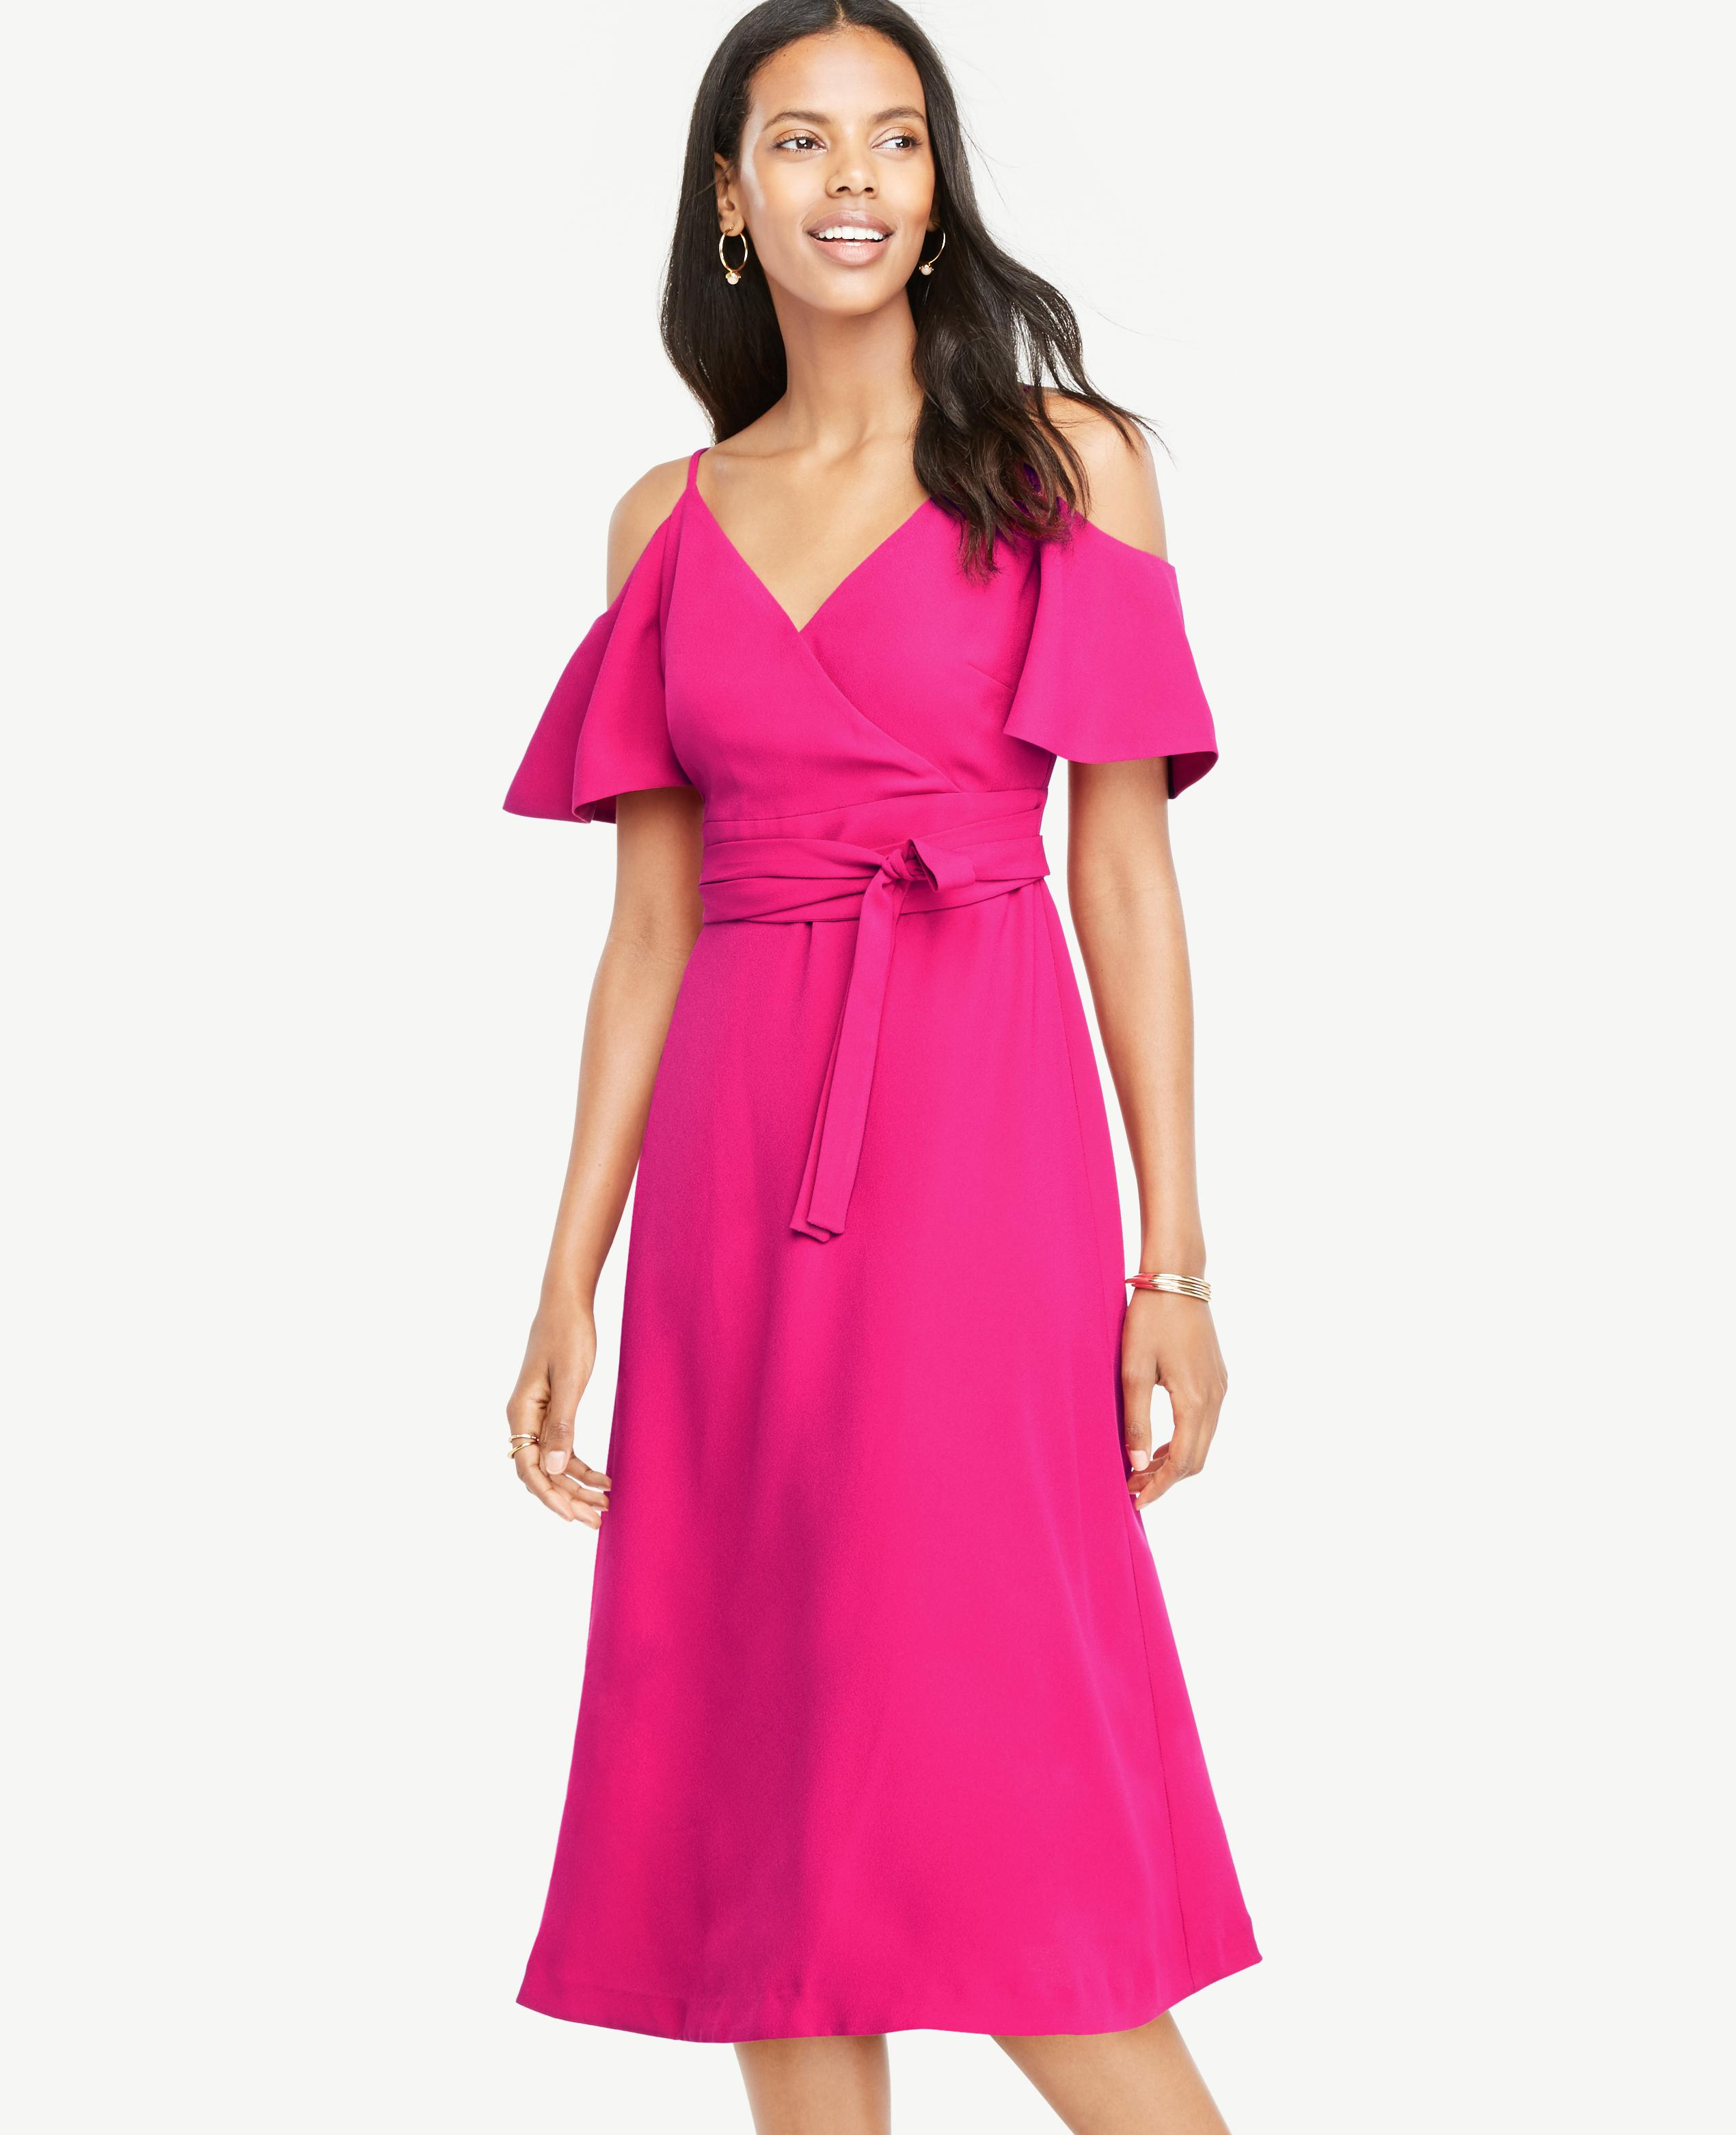 876afb78d09 Lyst - Ann Taylor Petite Cold Shoulder Belted Wrap Dress in Pink